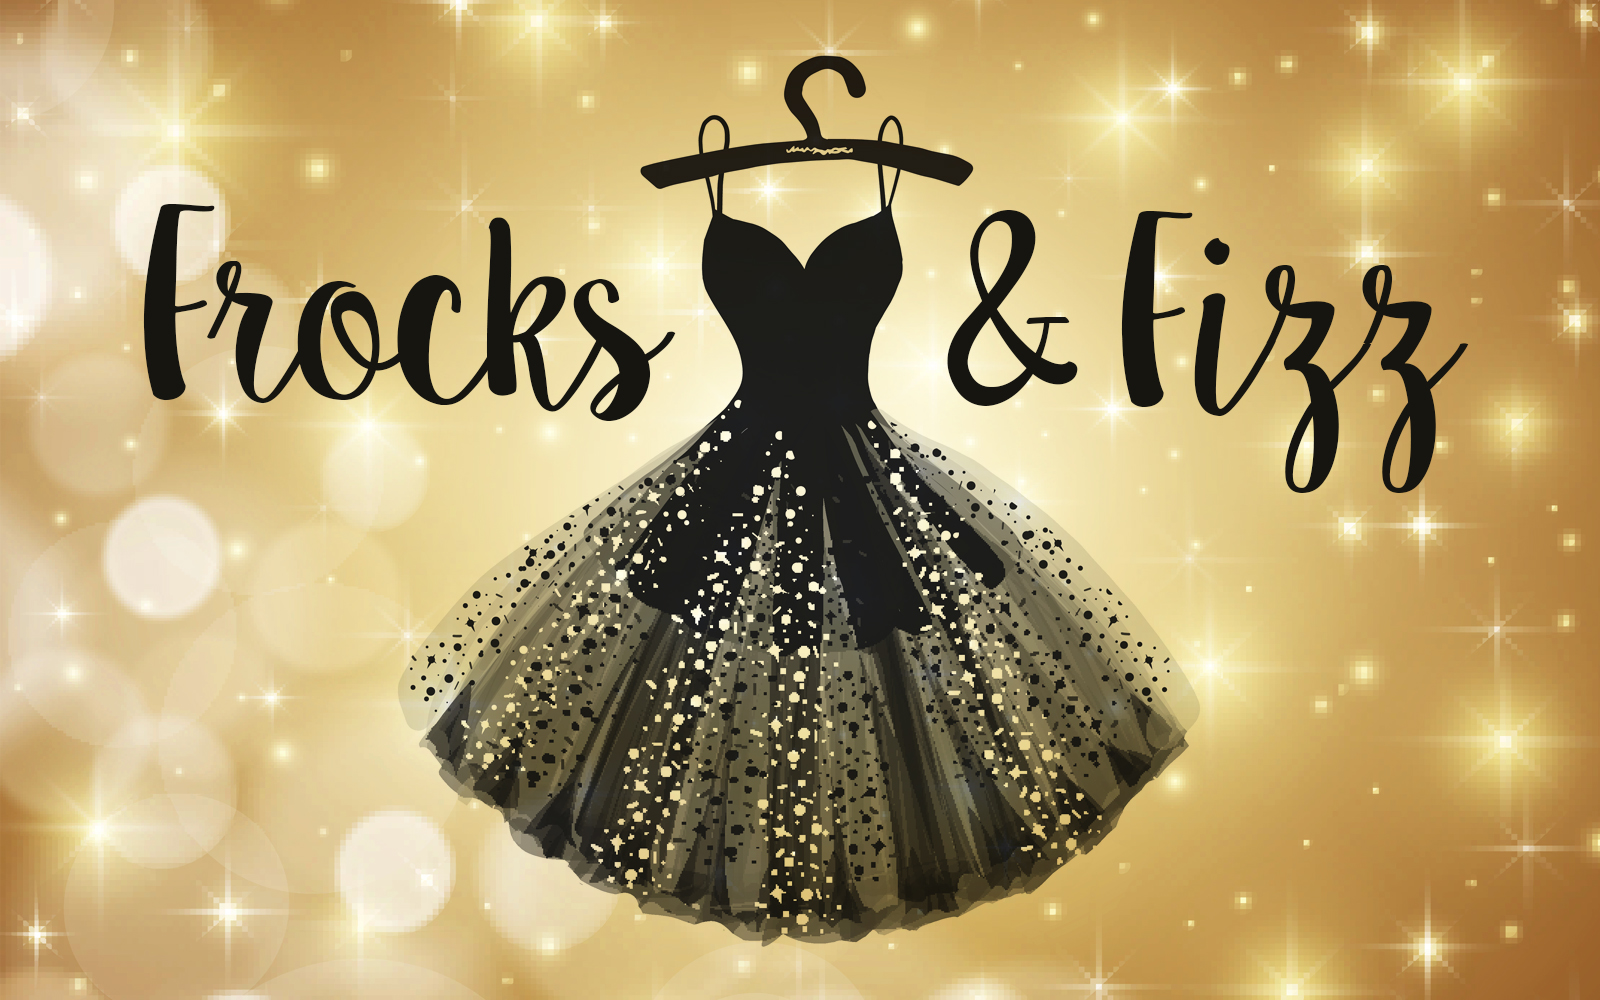 Frocks_and_Fizz_screen_1600x1000.jpg